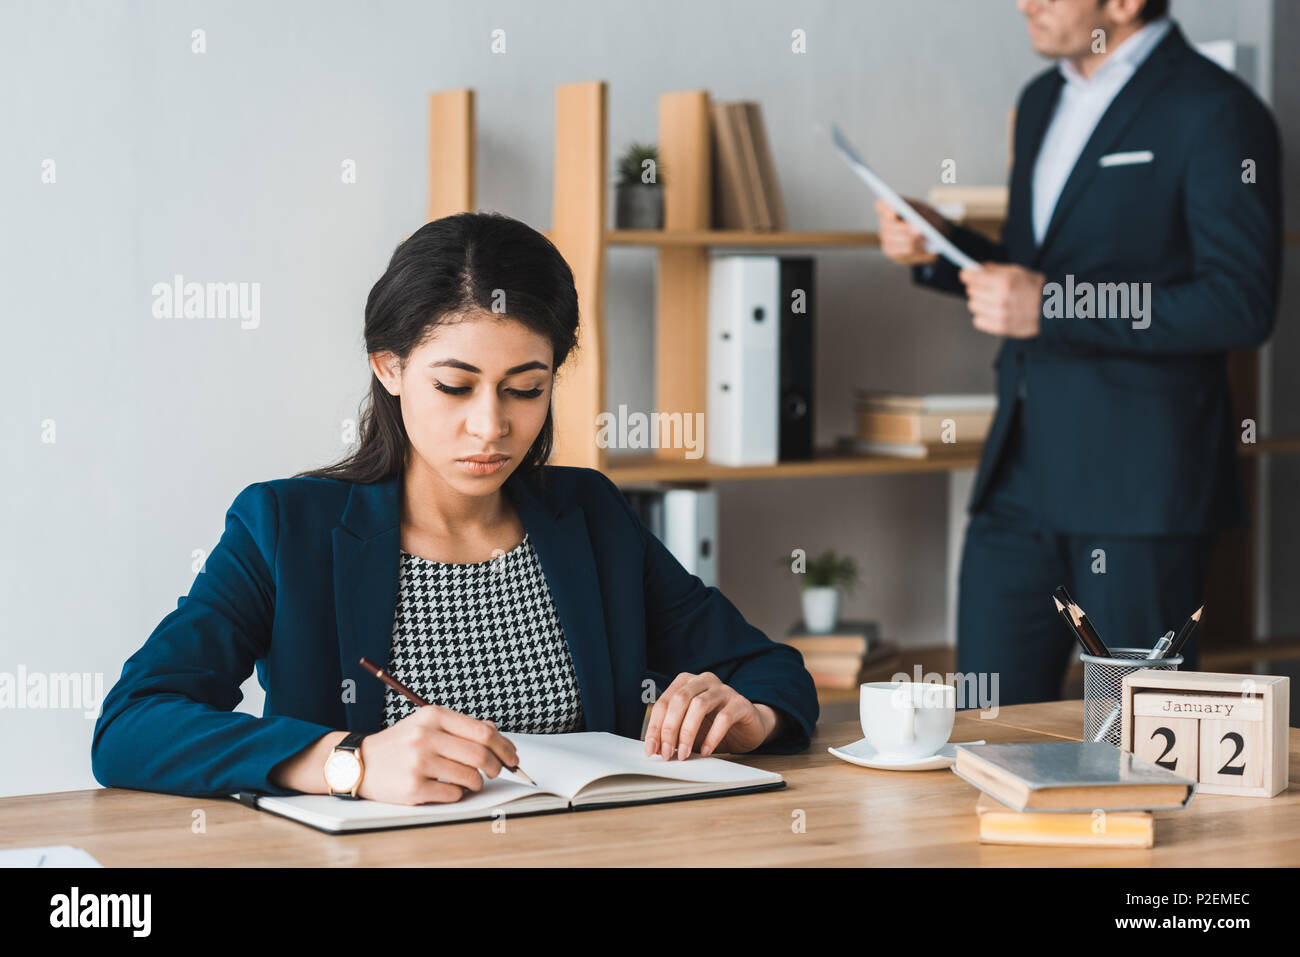 Colleagues in business suits studying papers in working office - Stock Image